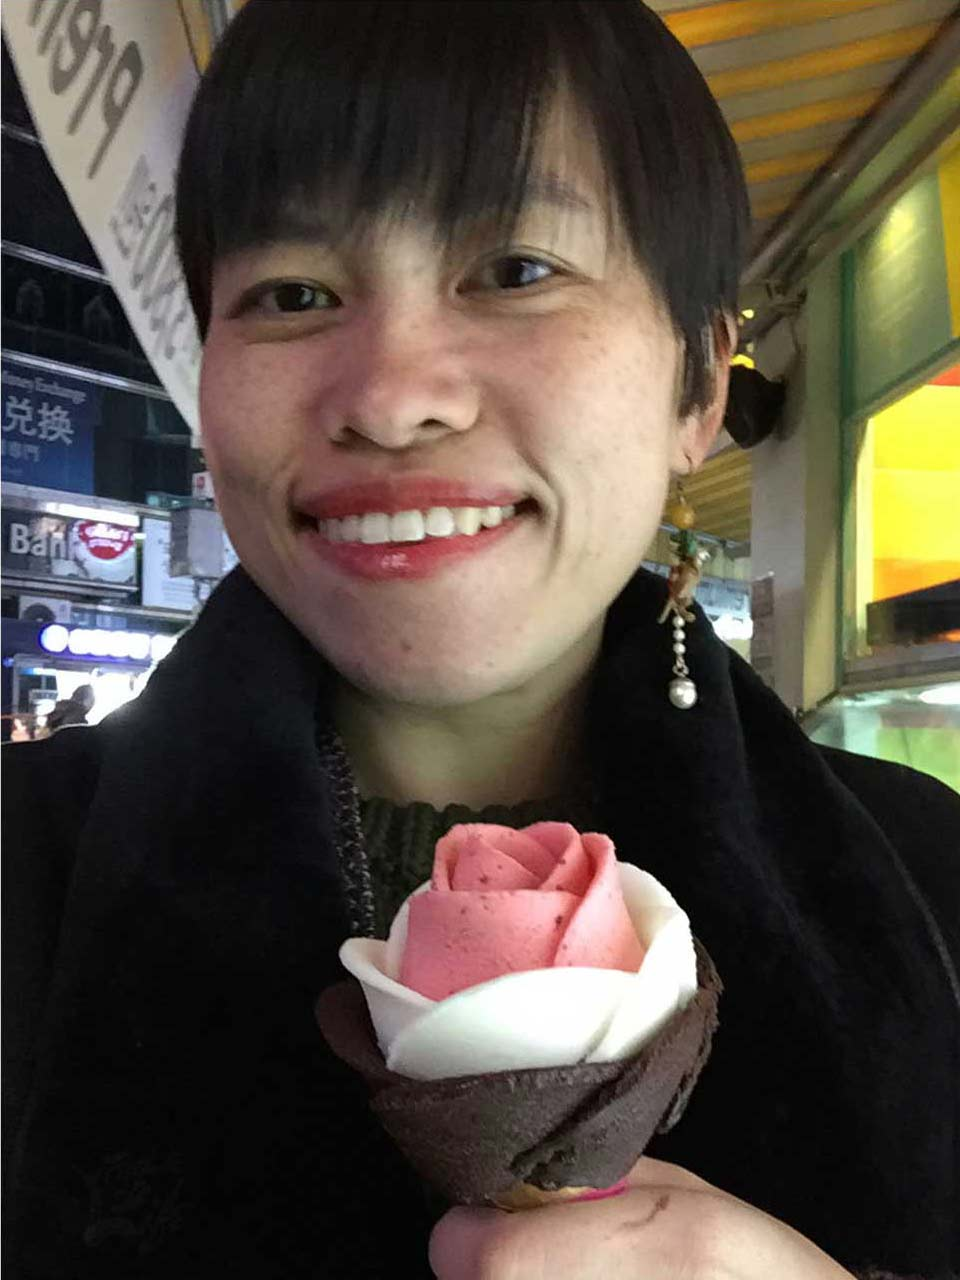 (I couldn't seem to decide what made me happier when I took the shot: (1) the weird earring, (2) my yogurt, strawberry, and dark chocolate ice-cream rose cone, or (3) taking my first successful selfie at the tender age of 28.)